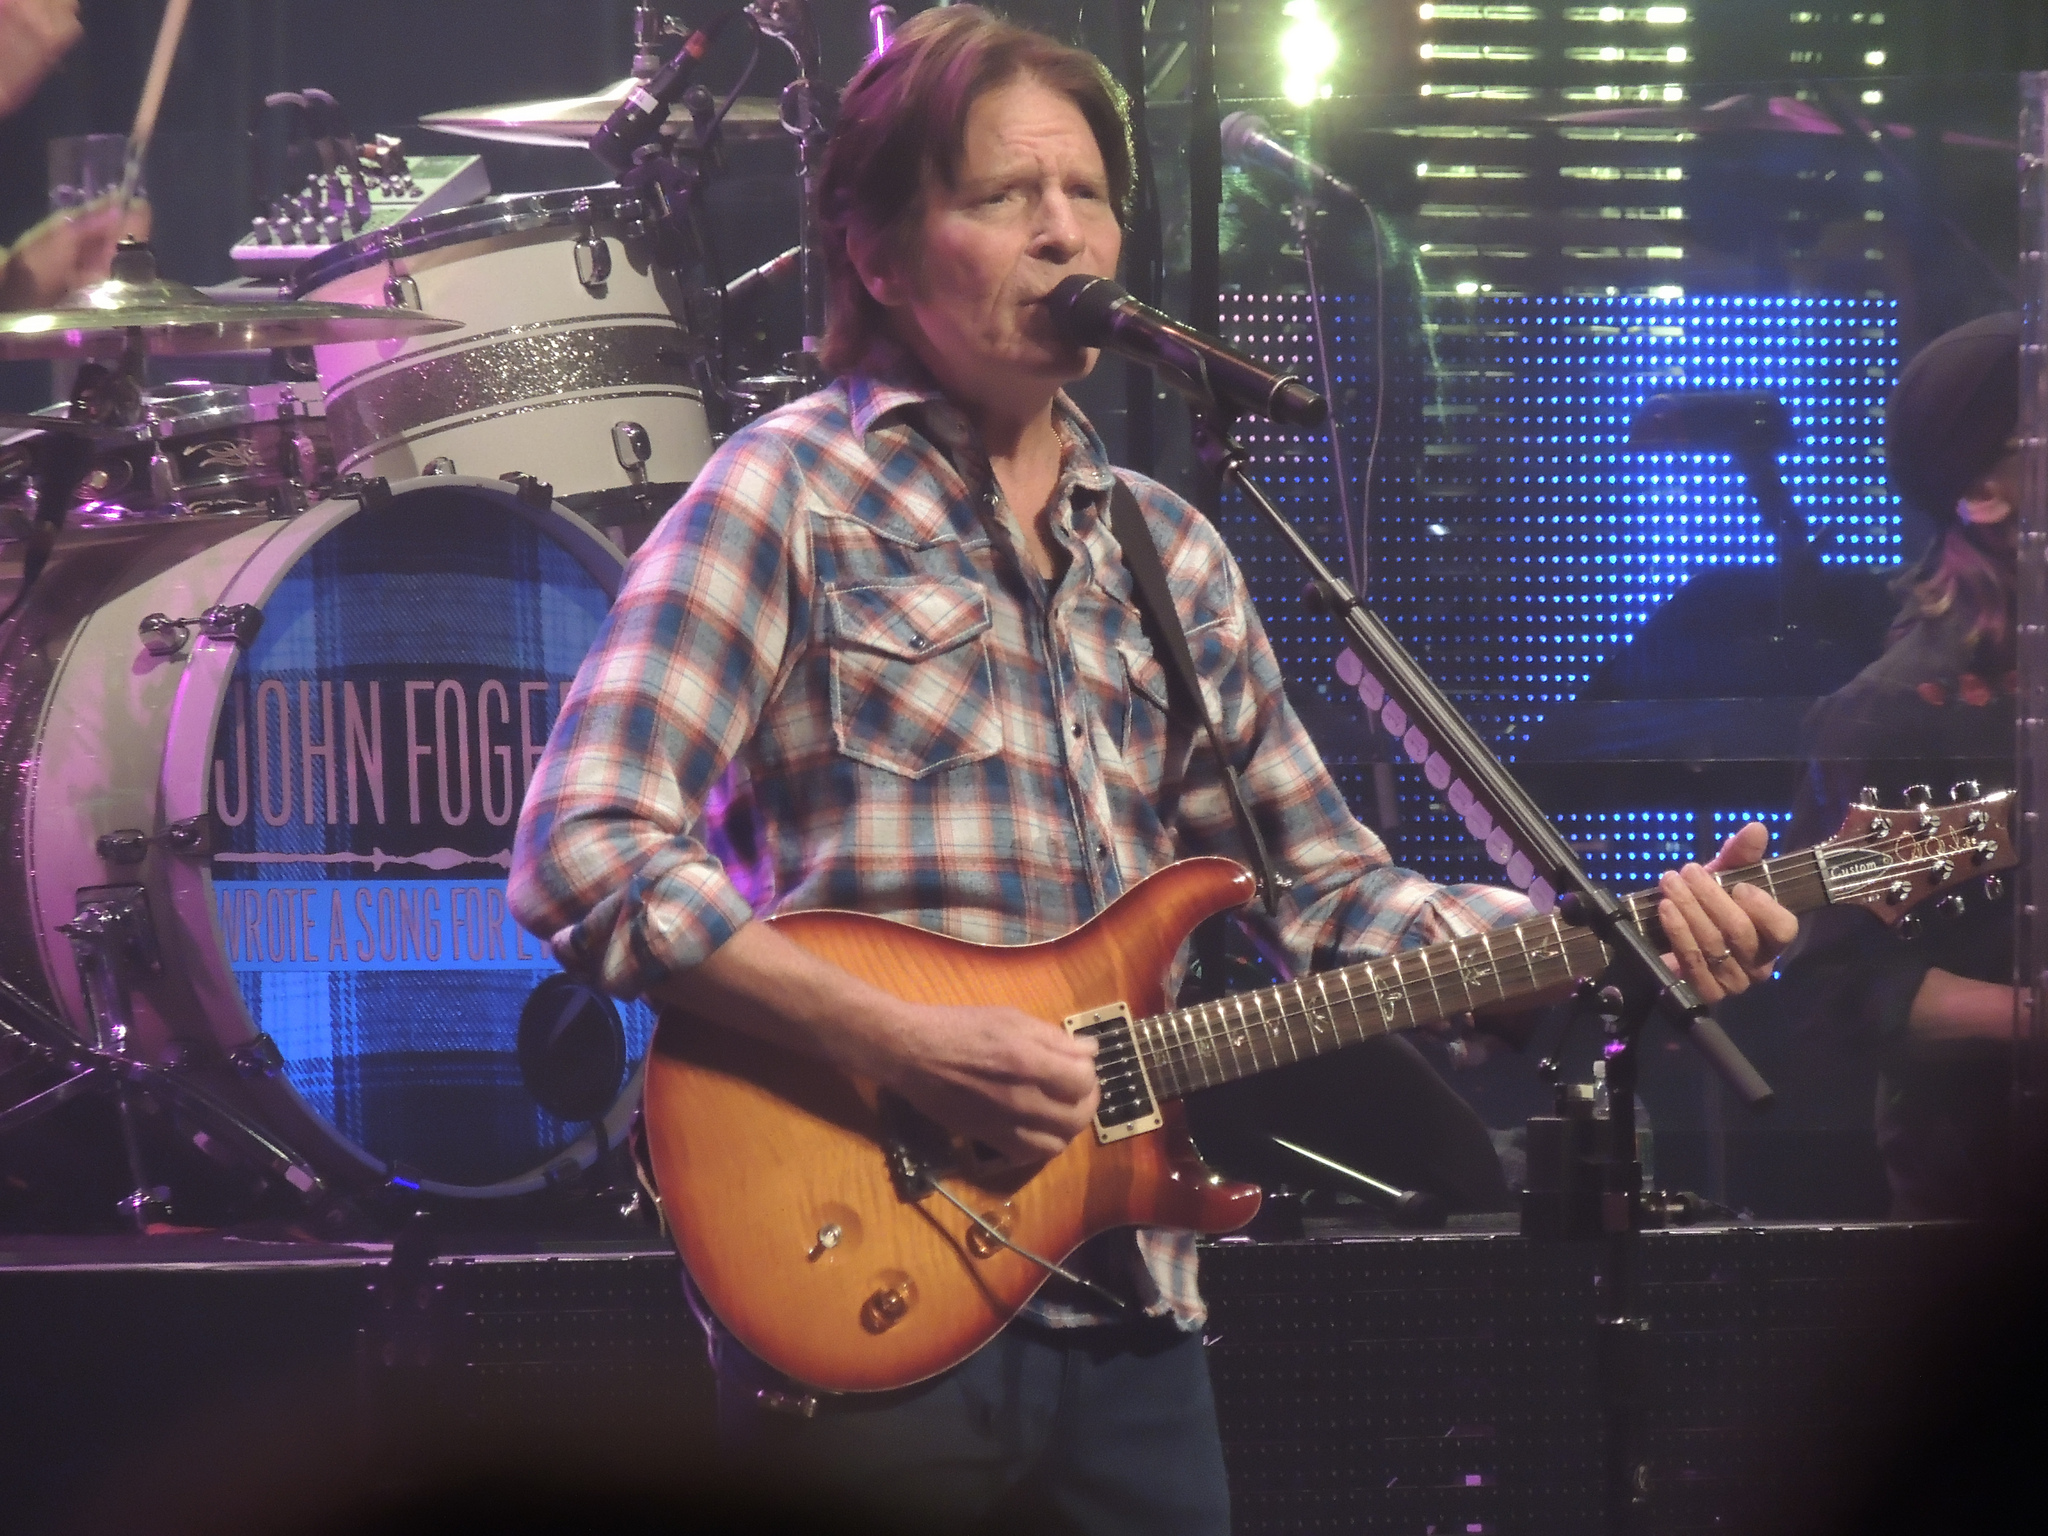 john-fogerty-beacon-theater-2013-11-13-2